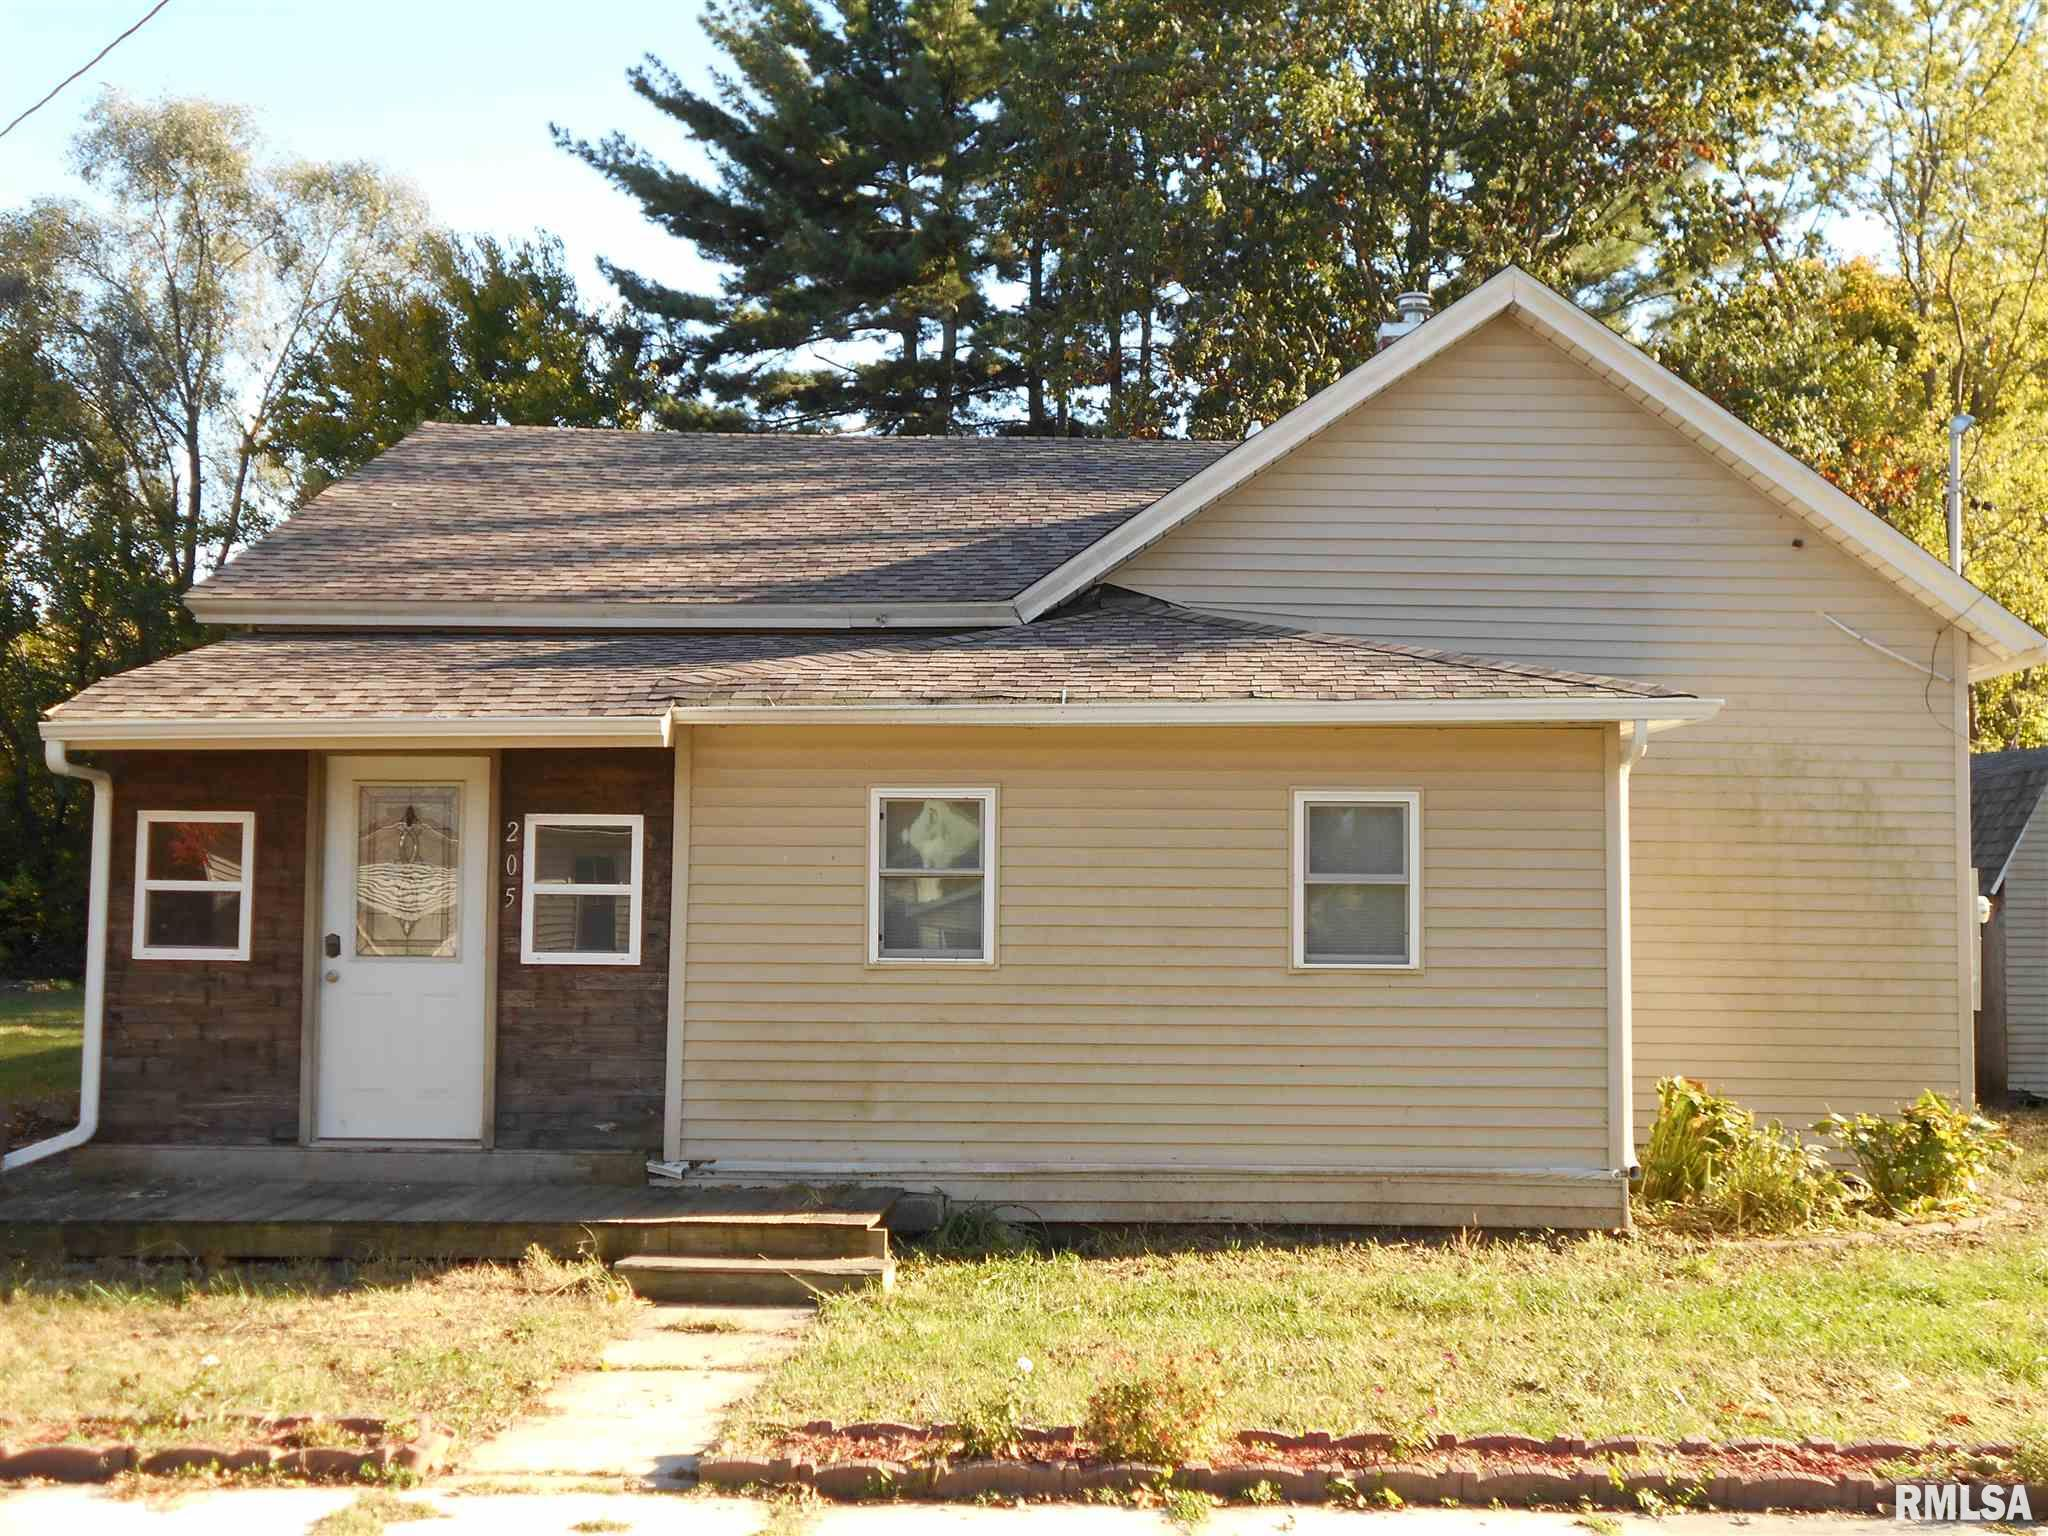 205 W SOUTH Property Photo - Colchester, IL real estate listing